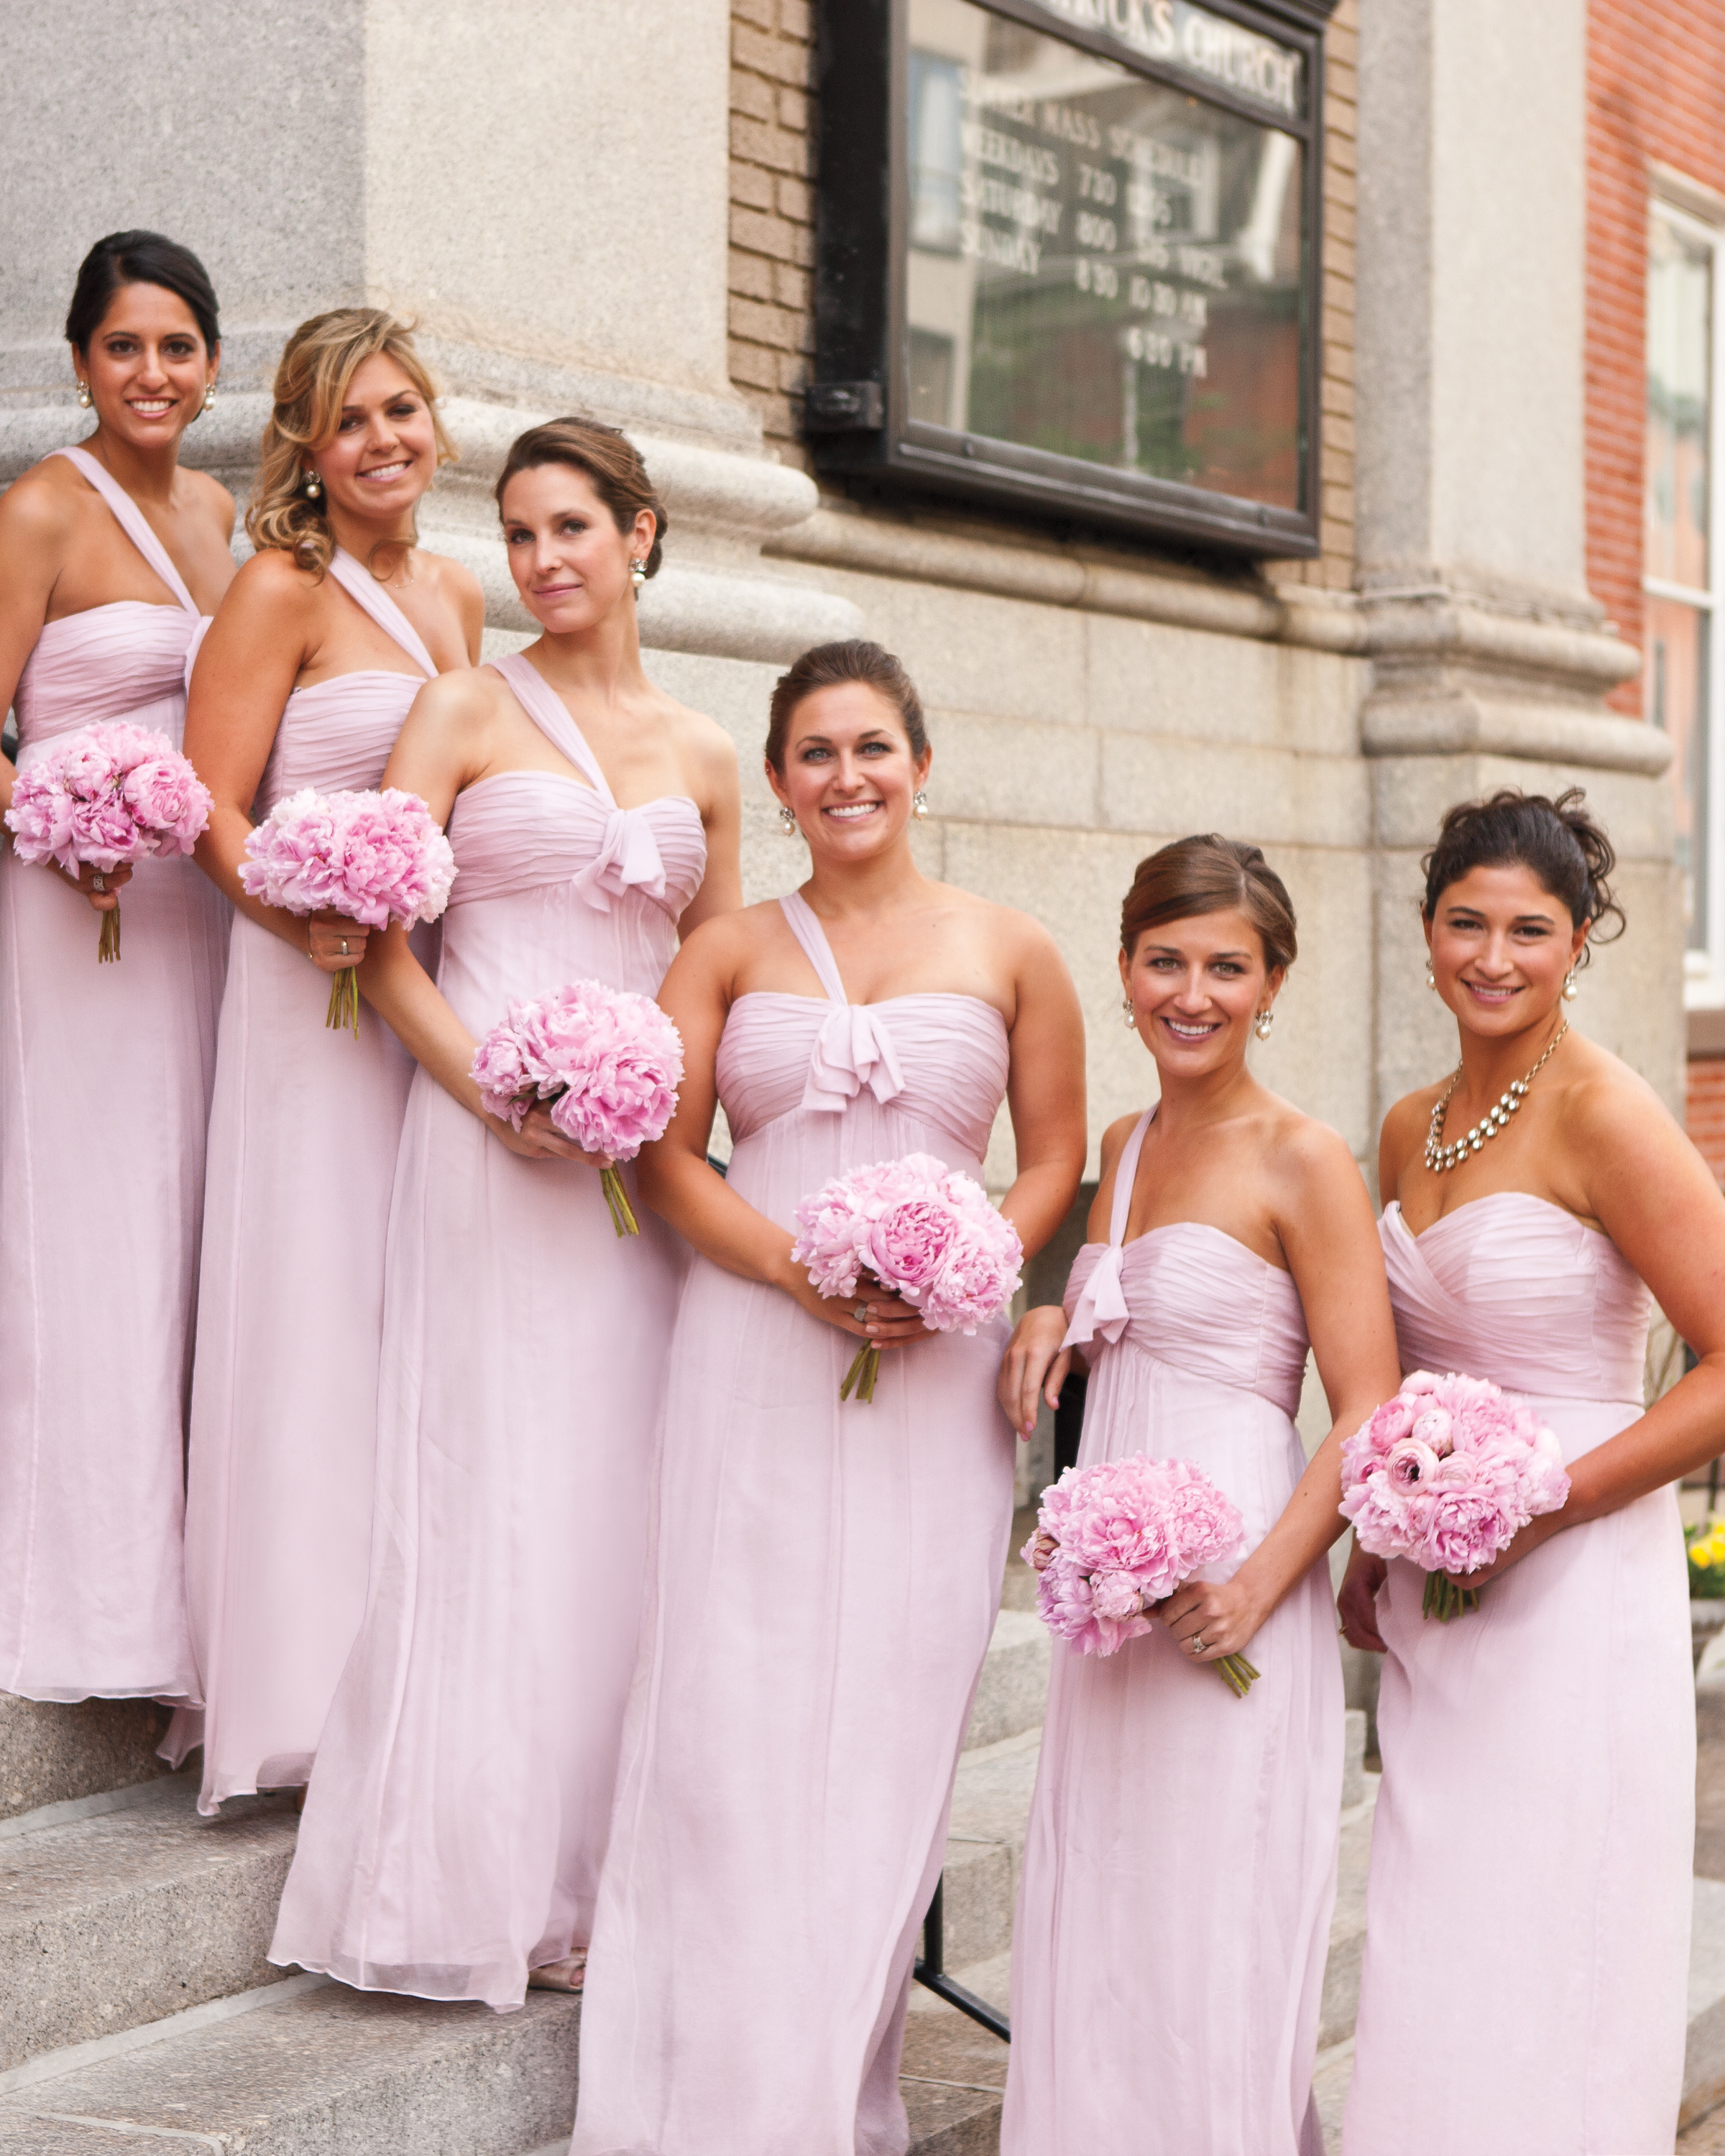 The Bridesmaids Dresses